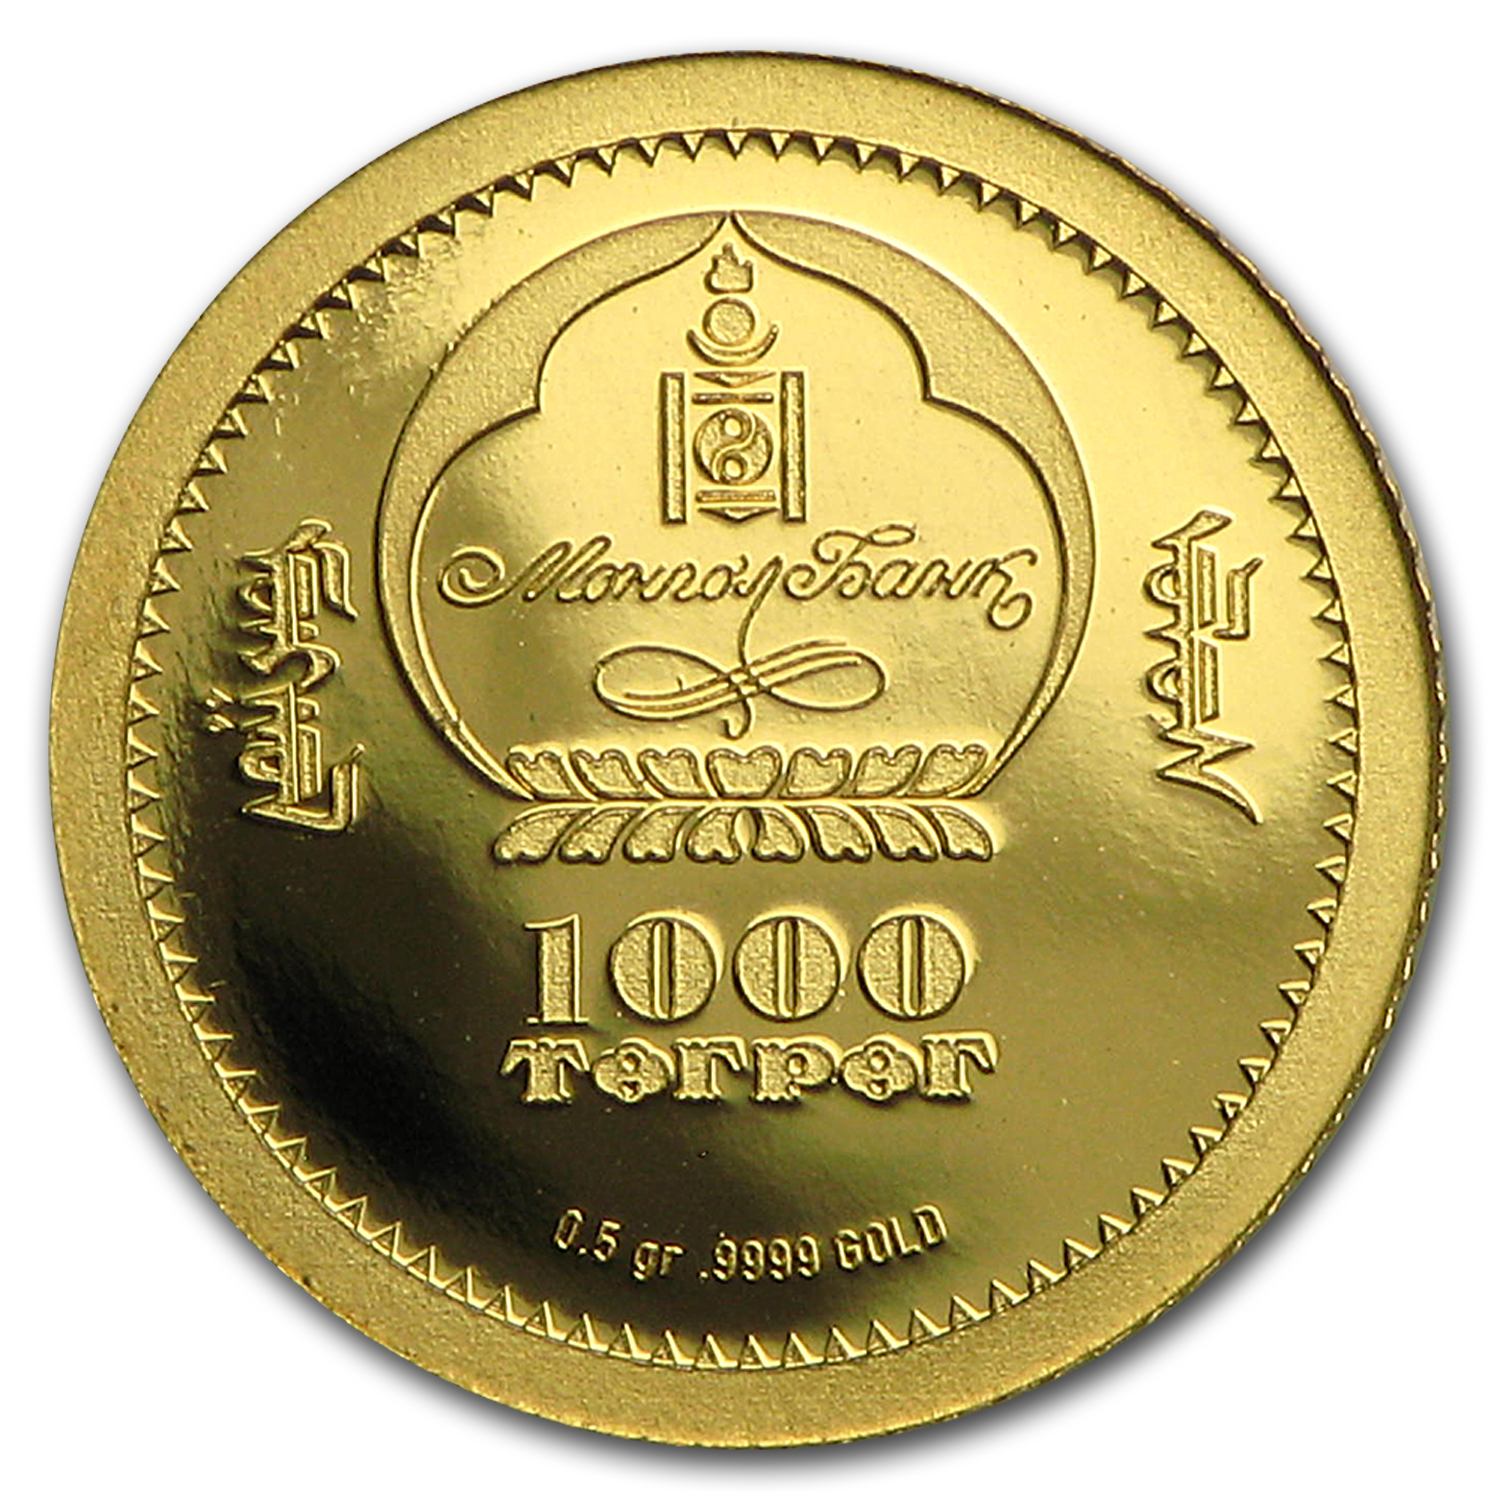 2016 Mongolia 1/2 gram Proof Gold 1000 Togrog Chinggis Khaan